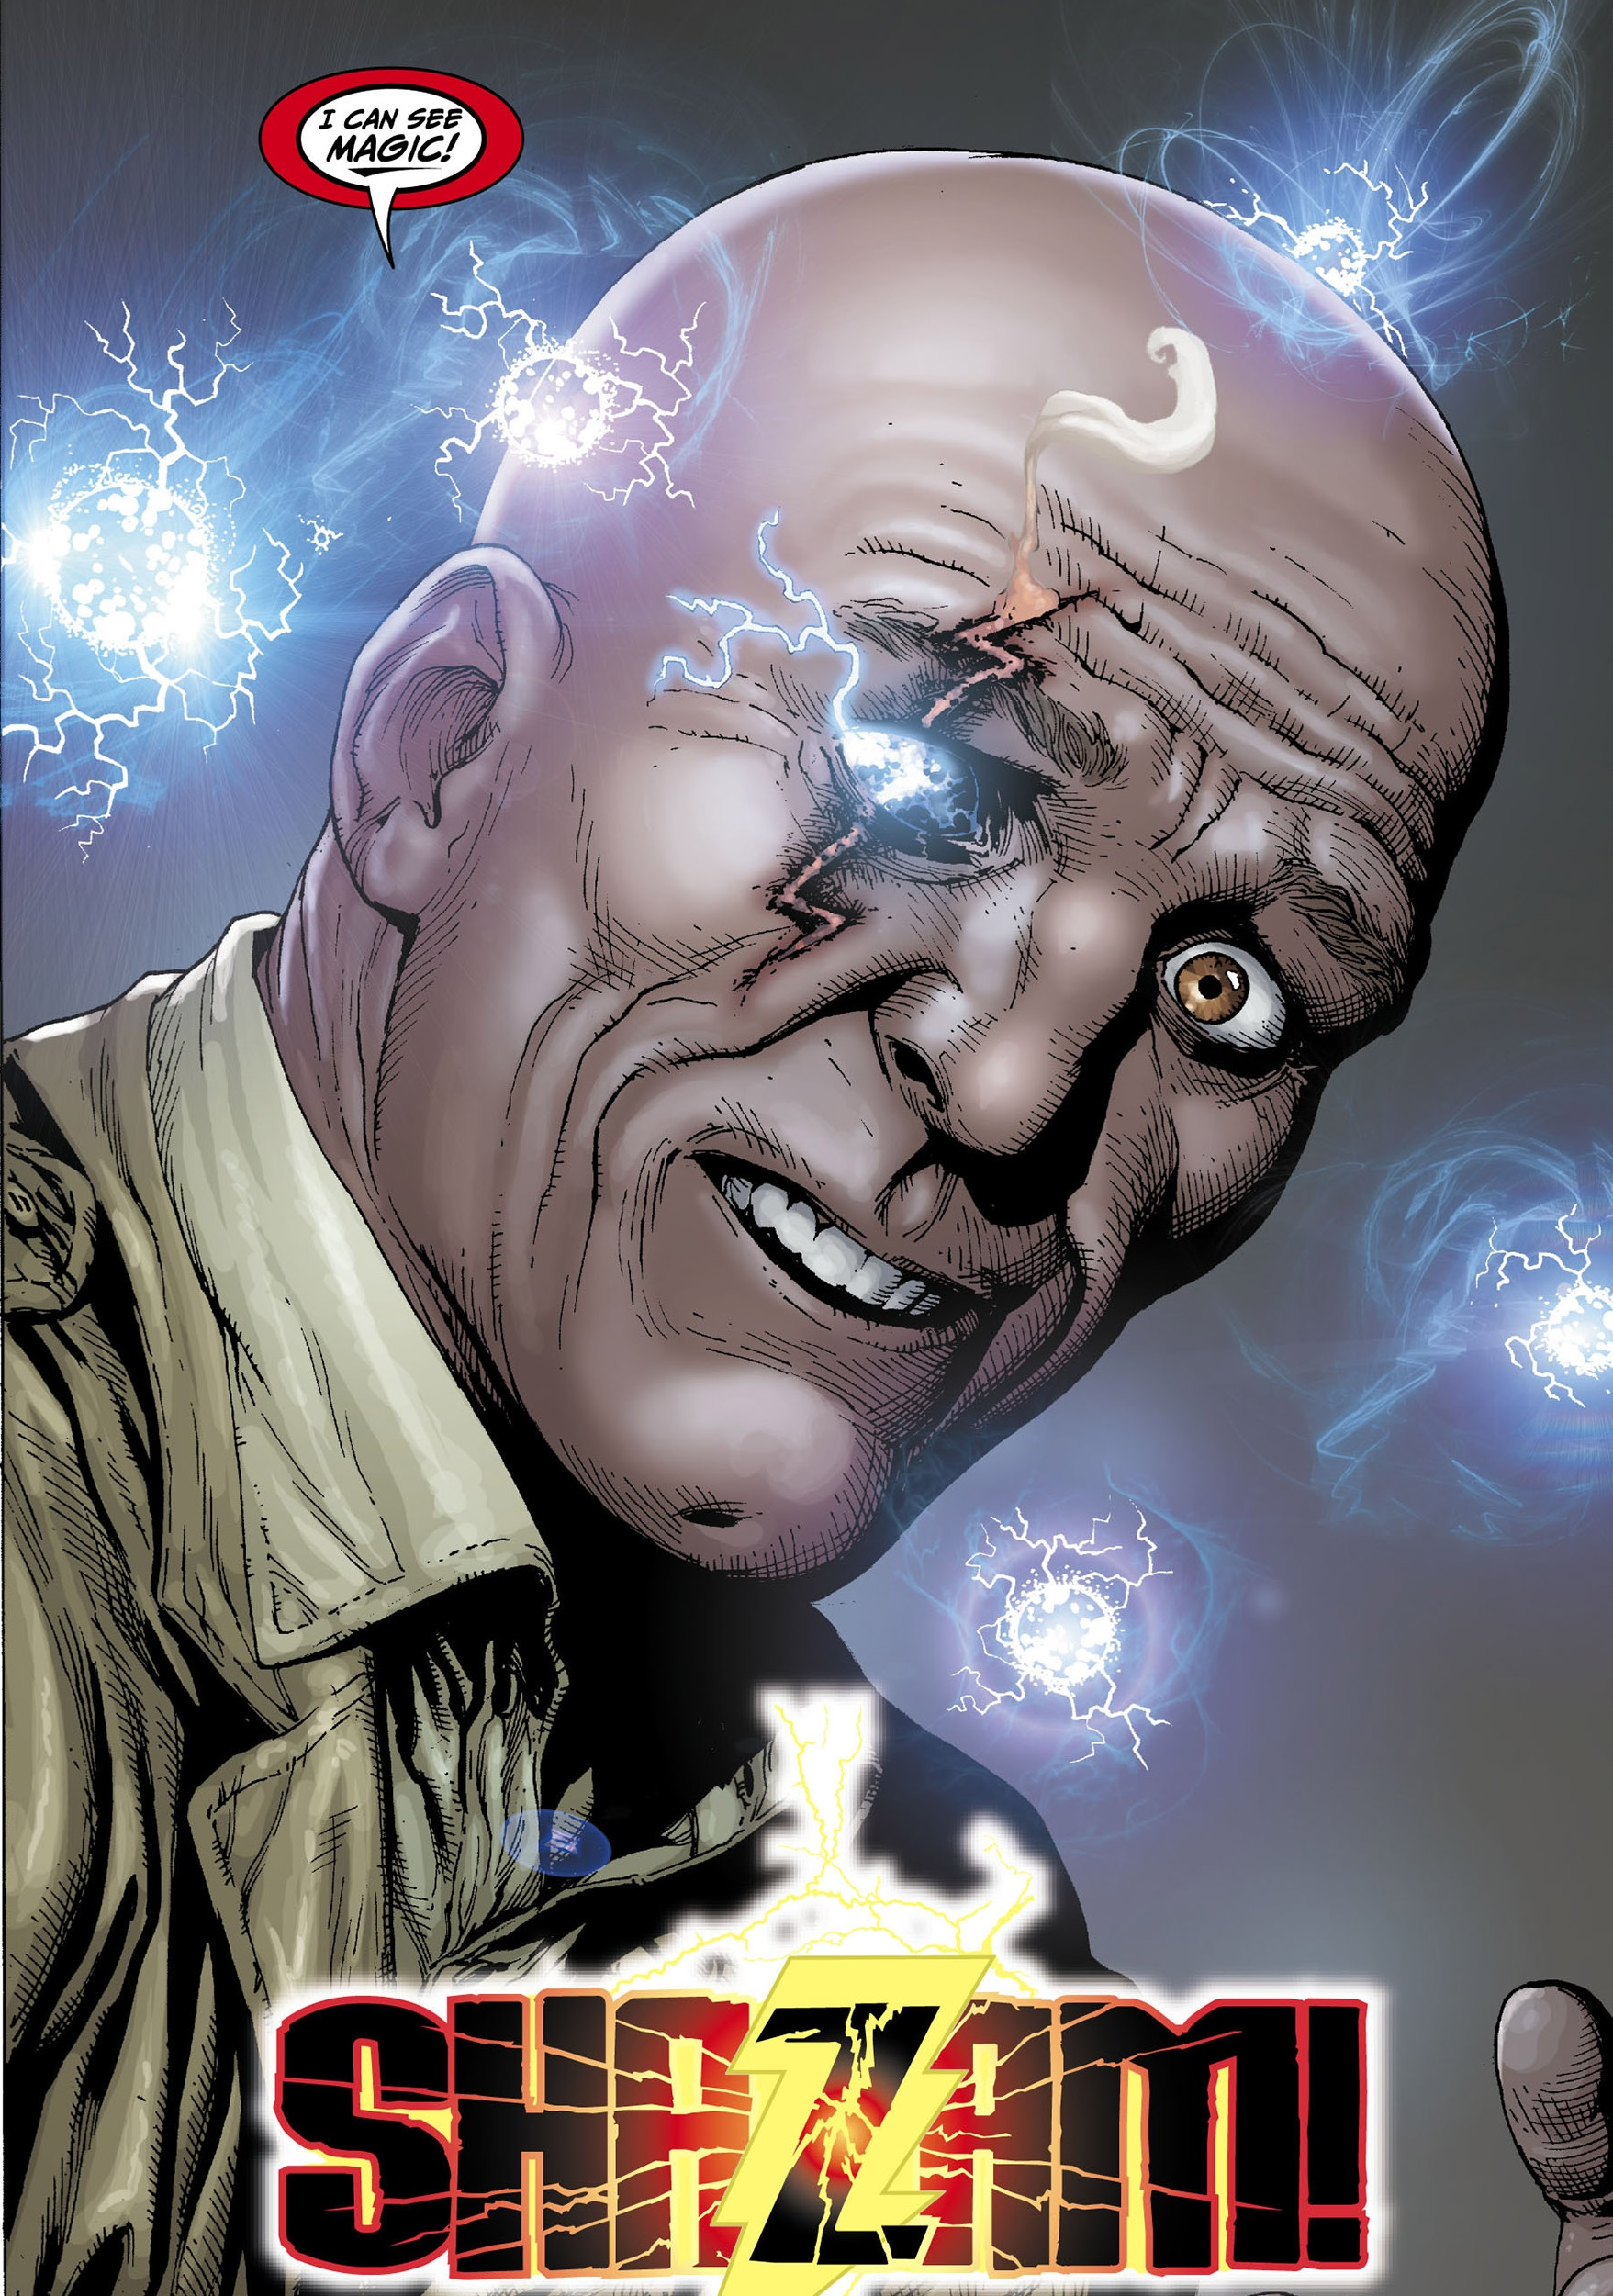 http://vignette2.wikia.nocookie.net/marvel_dc/images/5/52/Thaddeus_Sivana_Prime_Earth_0001.jpg/revision/latest?cb=20150309201157